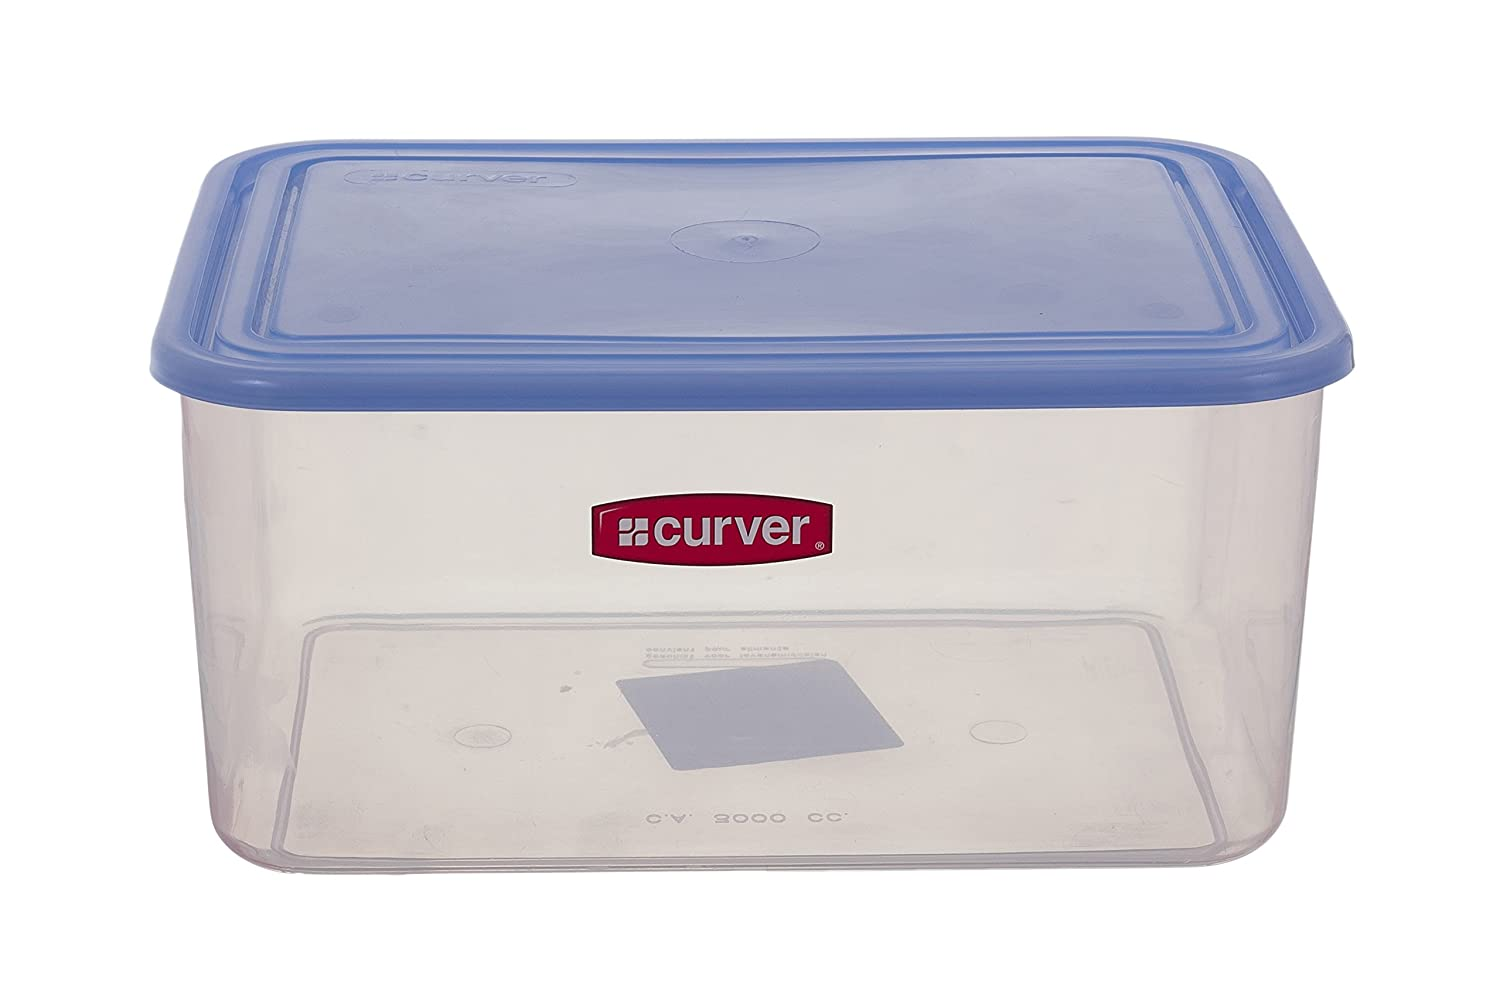 Curver Freezer-safe square plastic food storage containers with blue cover (3 L) EF500820 Amazon.co.uk Kitchen \u0026 Home  sc 1 st  Amazon UK & Curver Freezer-safe square plastic food storage containers with blue ...